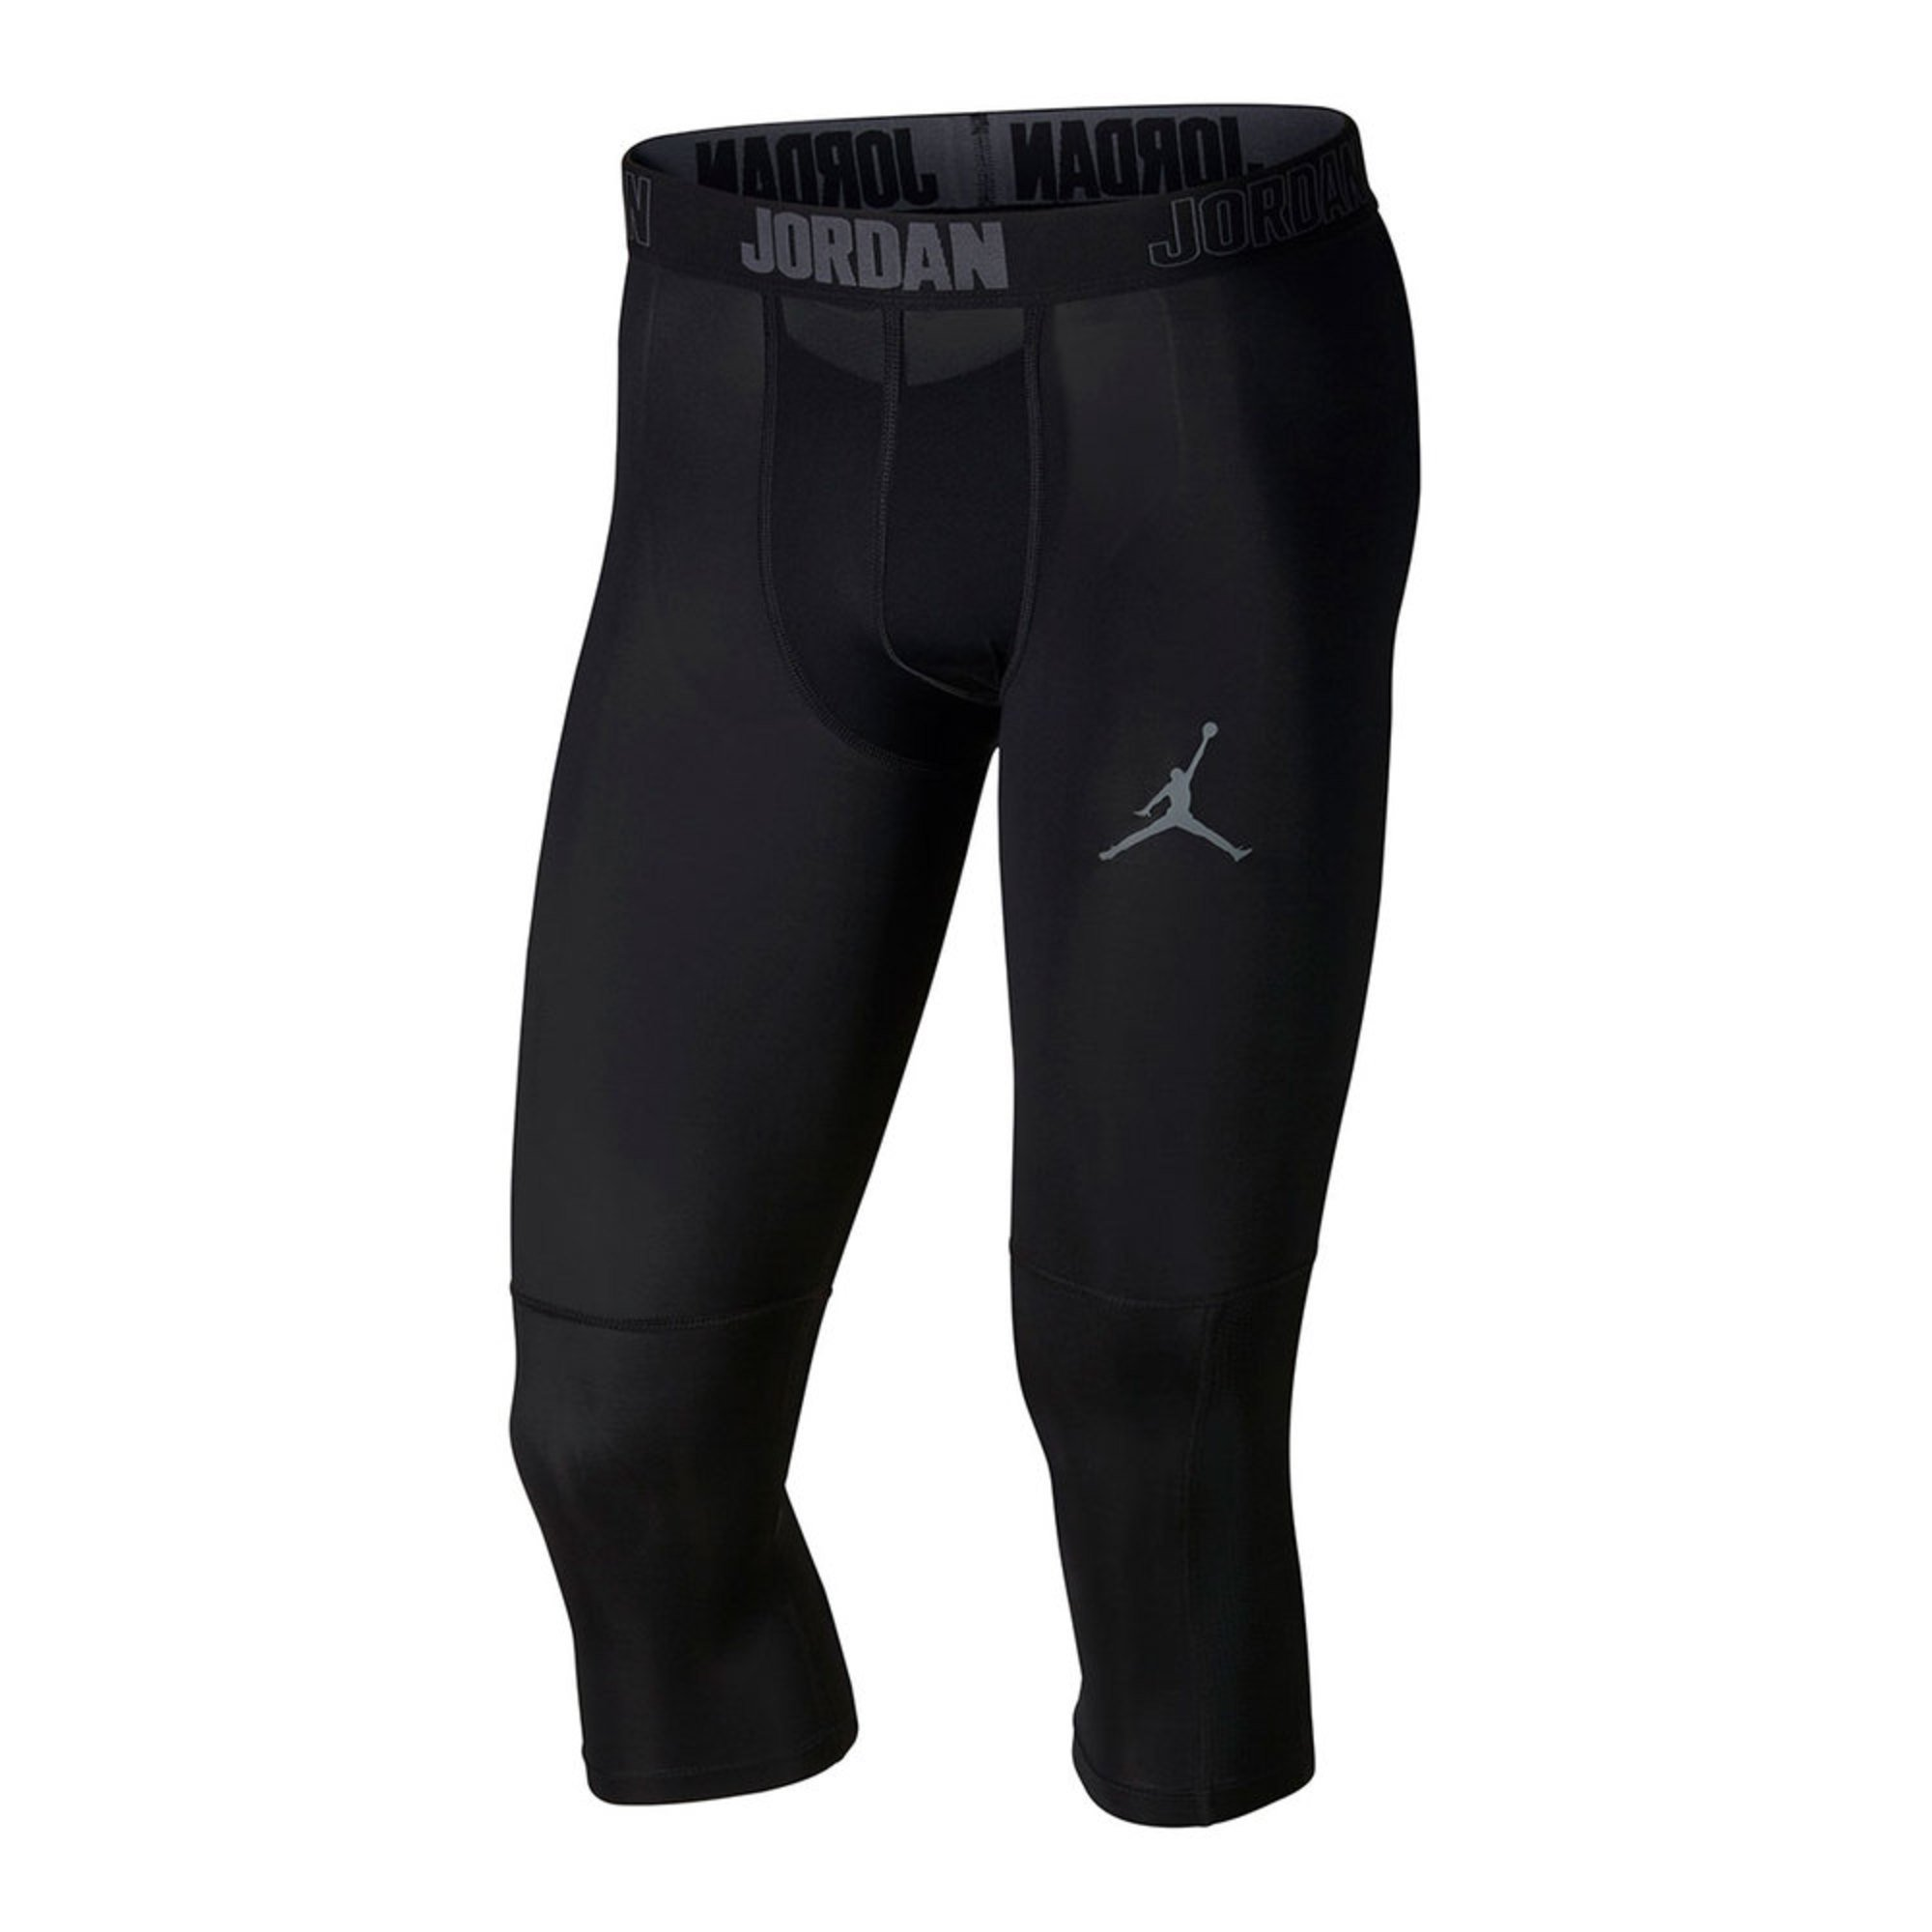 588d15399b6 Jordan Men's 23 Alpha Dry 3/4 Tights In Black | Activewear Leggings ...